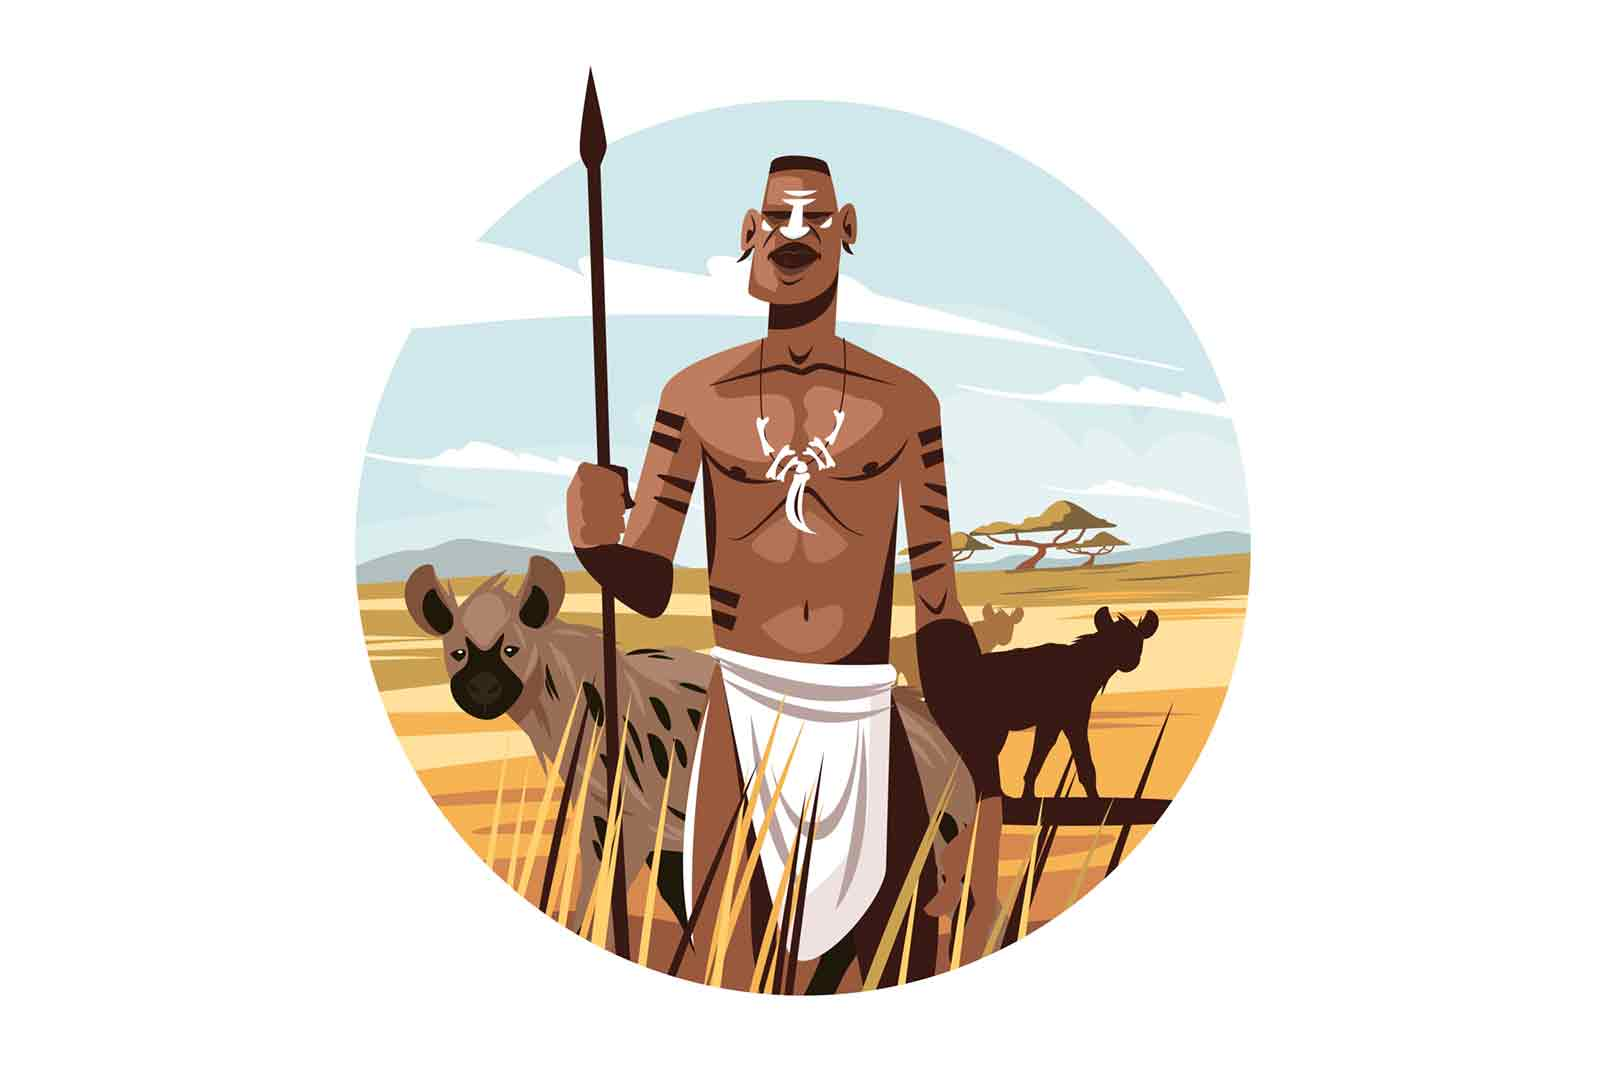 Native citizen in wild nature vector illustration. Man with sharp spear with wild animals on background flat style. Wildlife, freedom and masai warrior concept. Isolated on white